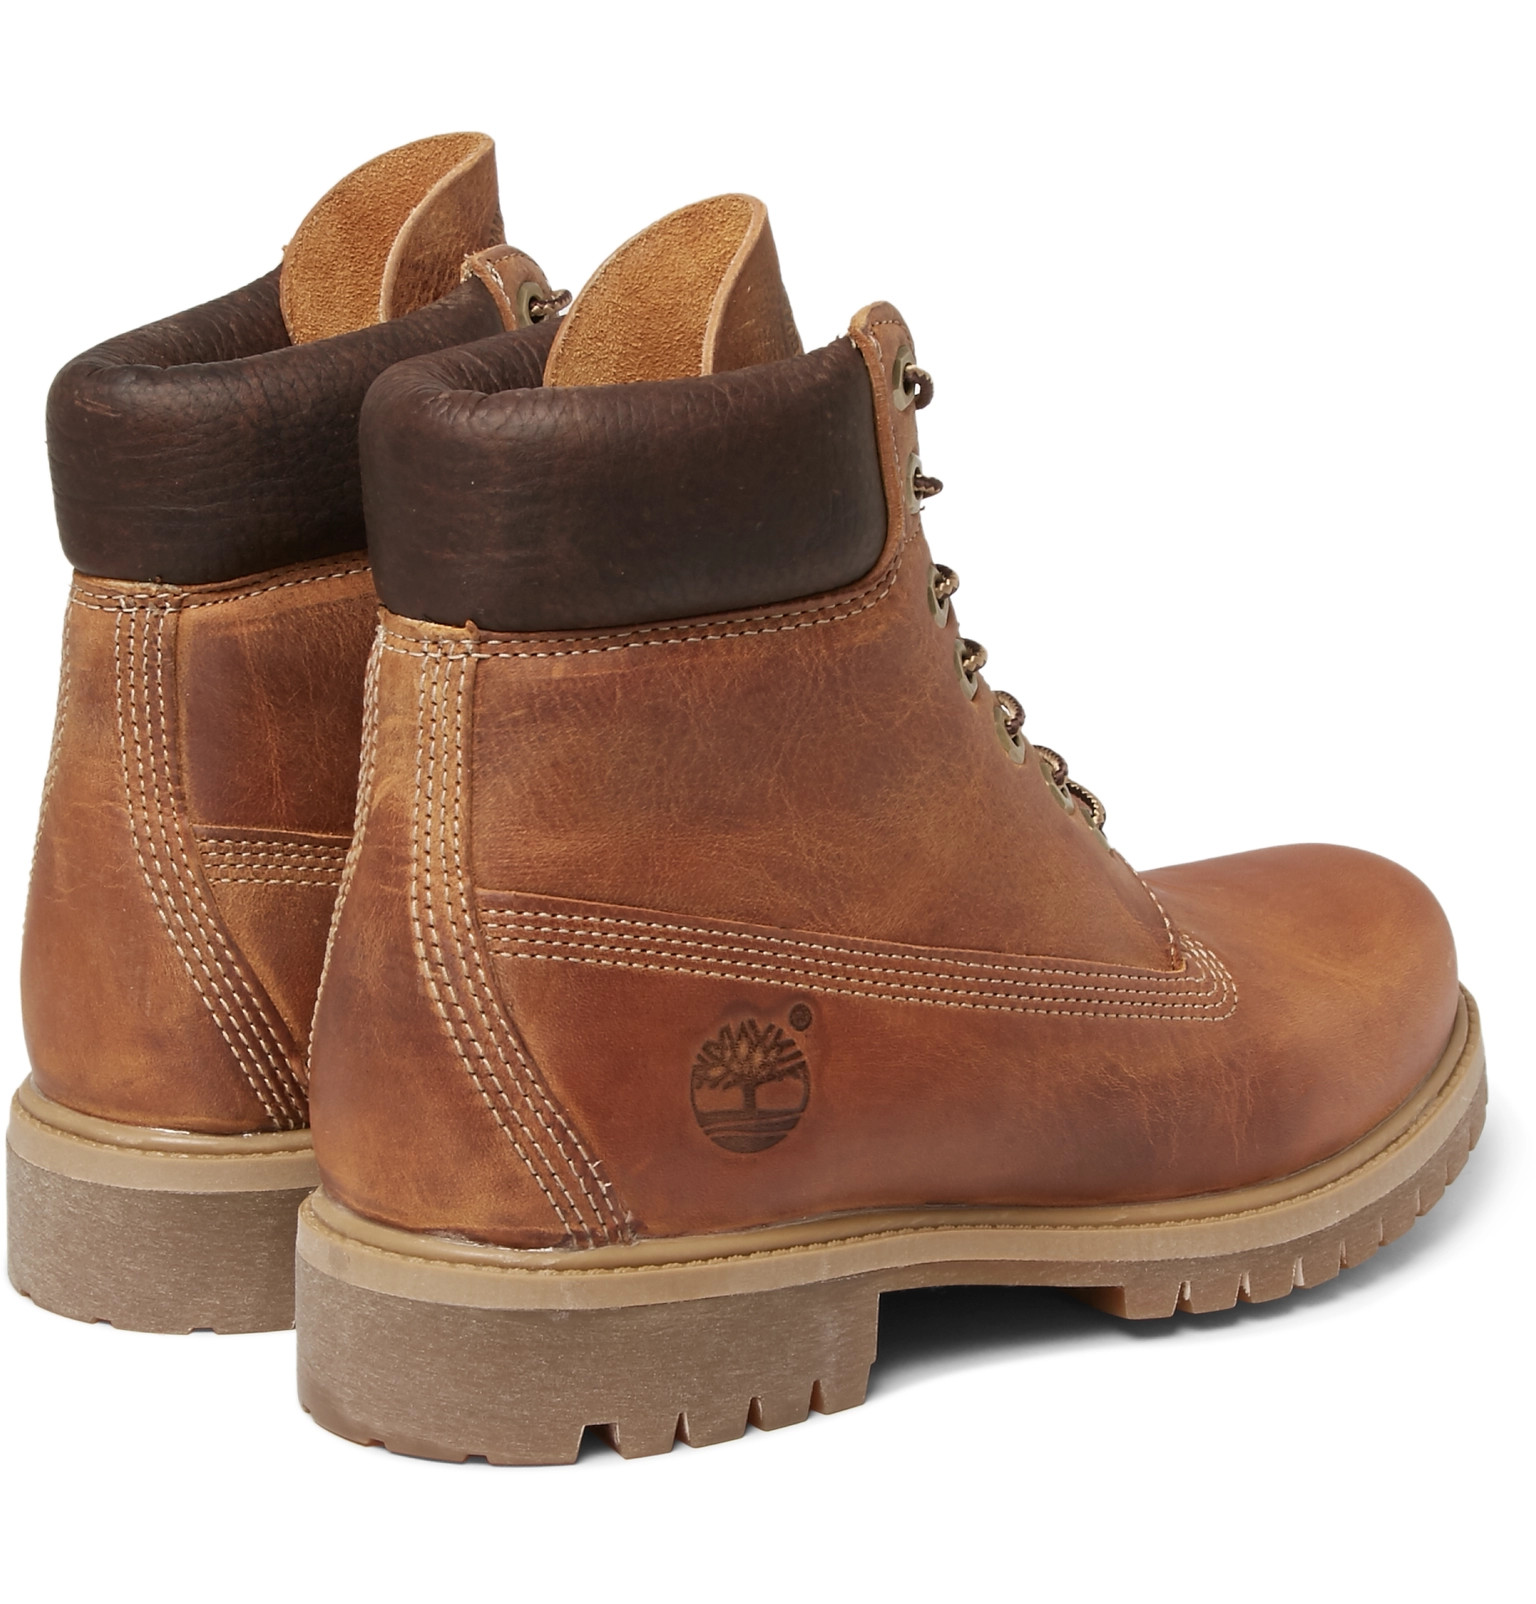 5703b66666 How The Timberland Boot Became A Cultural Icon   The Daily   MR PORTER